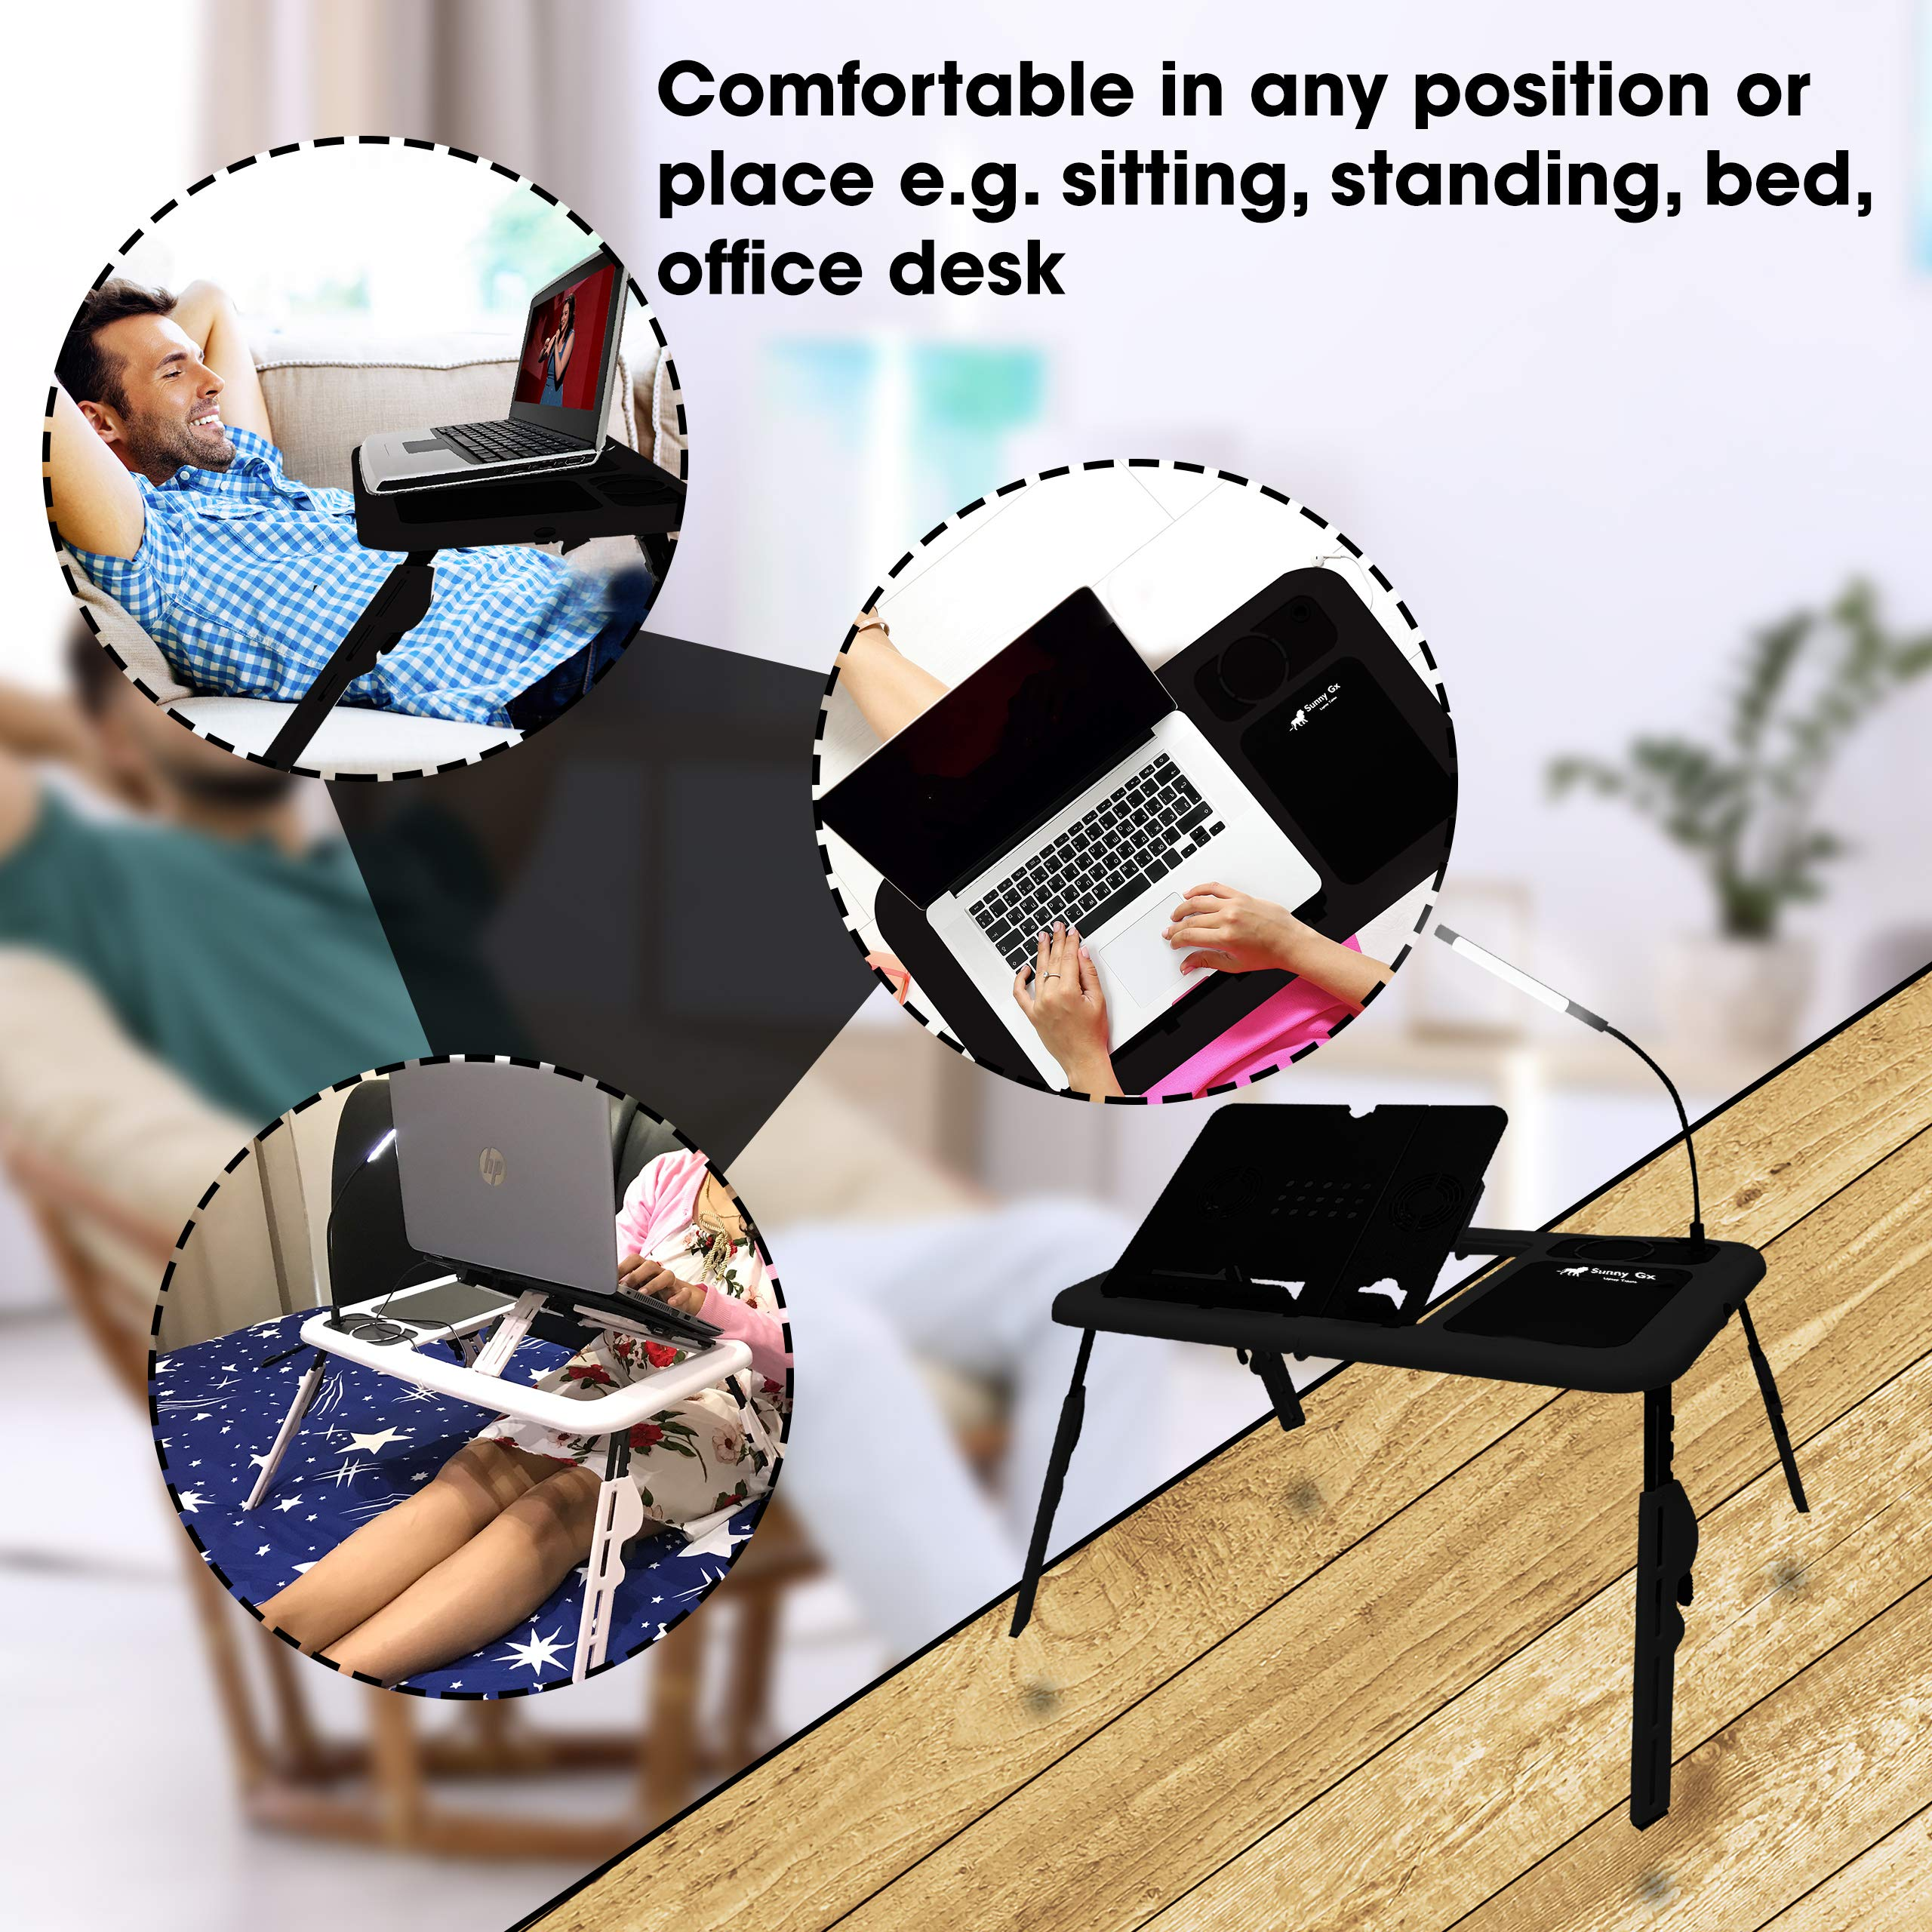 4 Different Height Adjustments Laptop Desk for Bed Foldable Bed Desk For Laptop Writing in Sofa,Couch Wood Sunny Gx Foldable Laptop Table White LED Light With Brightness Control 2 Cooling Fan